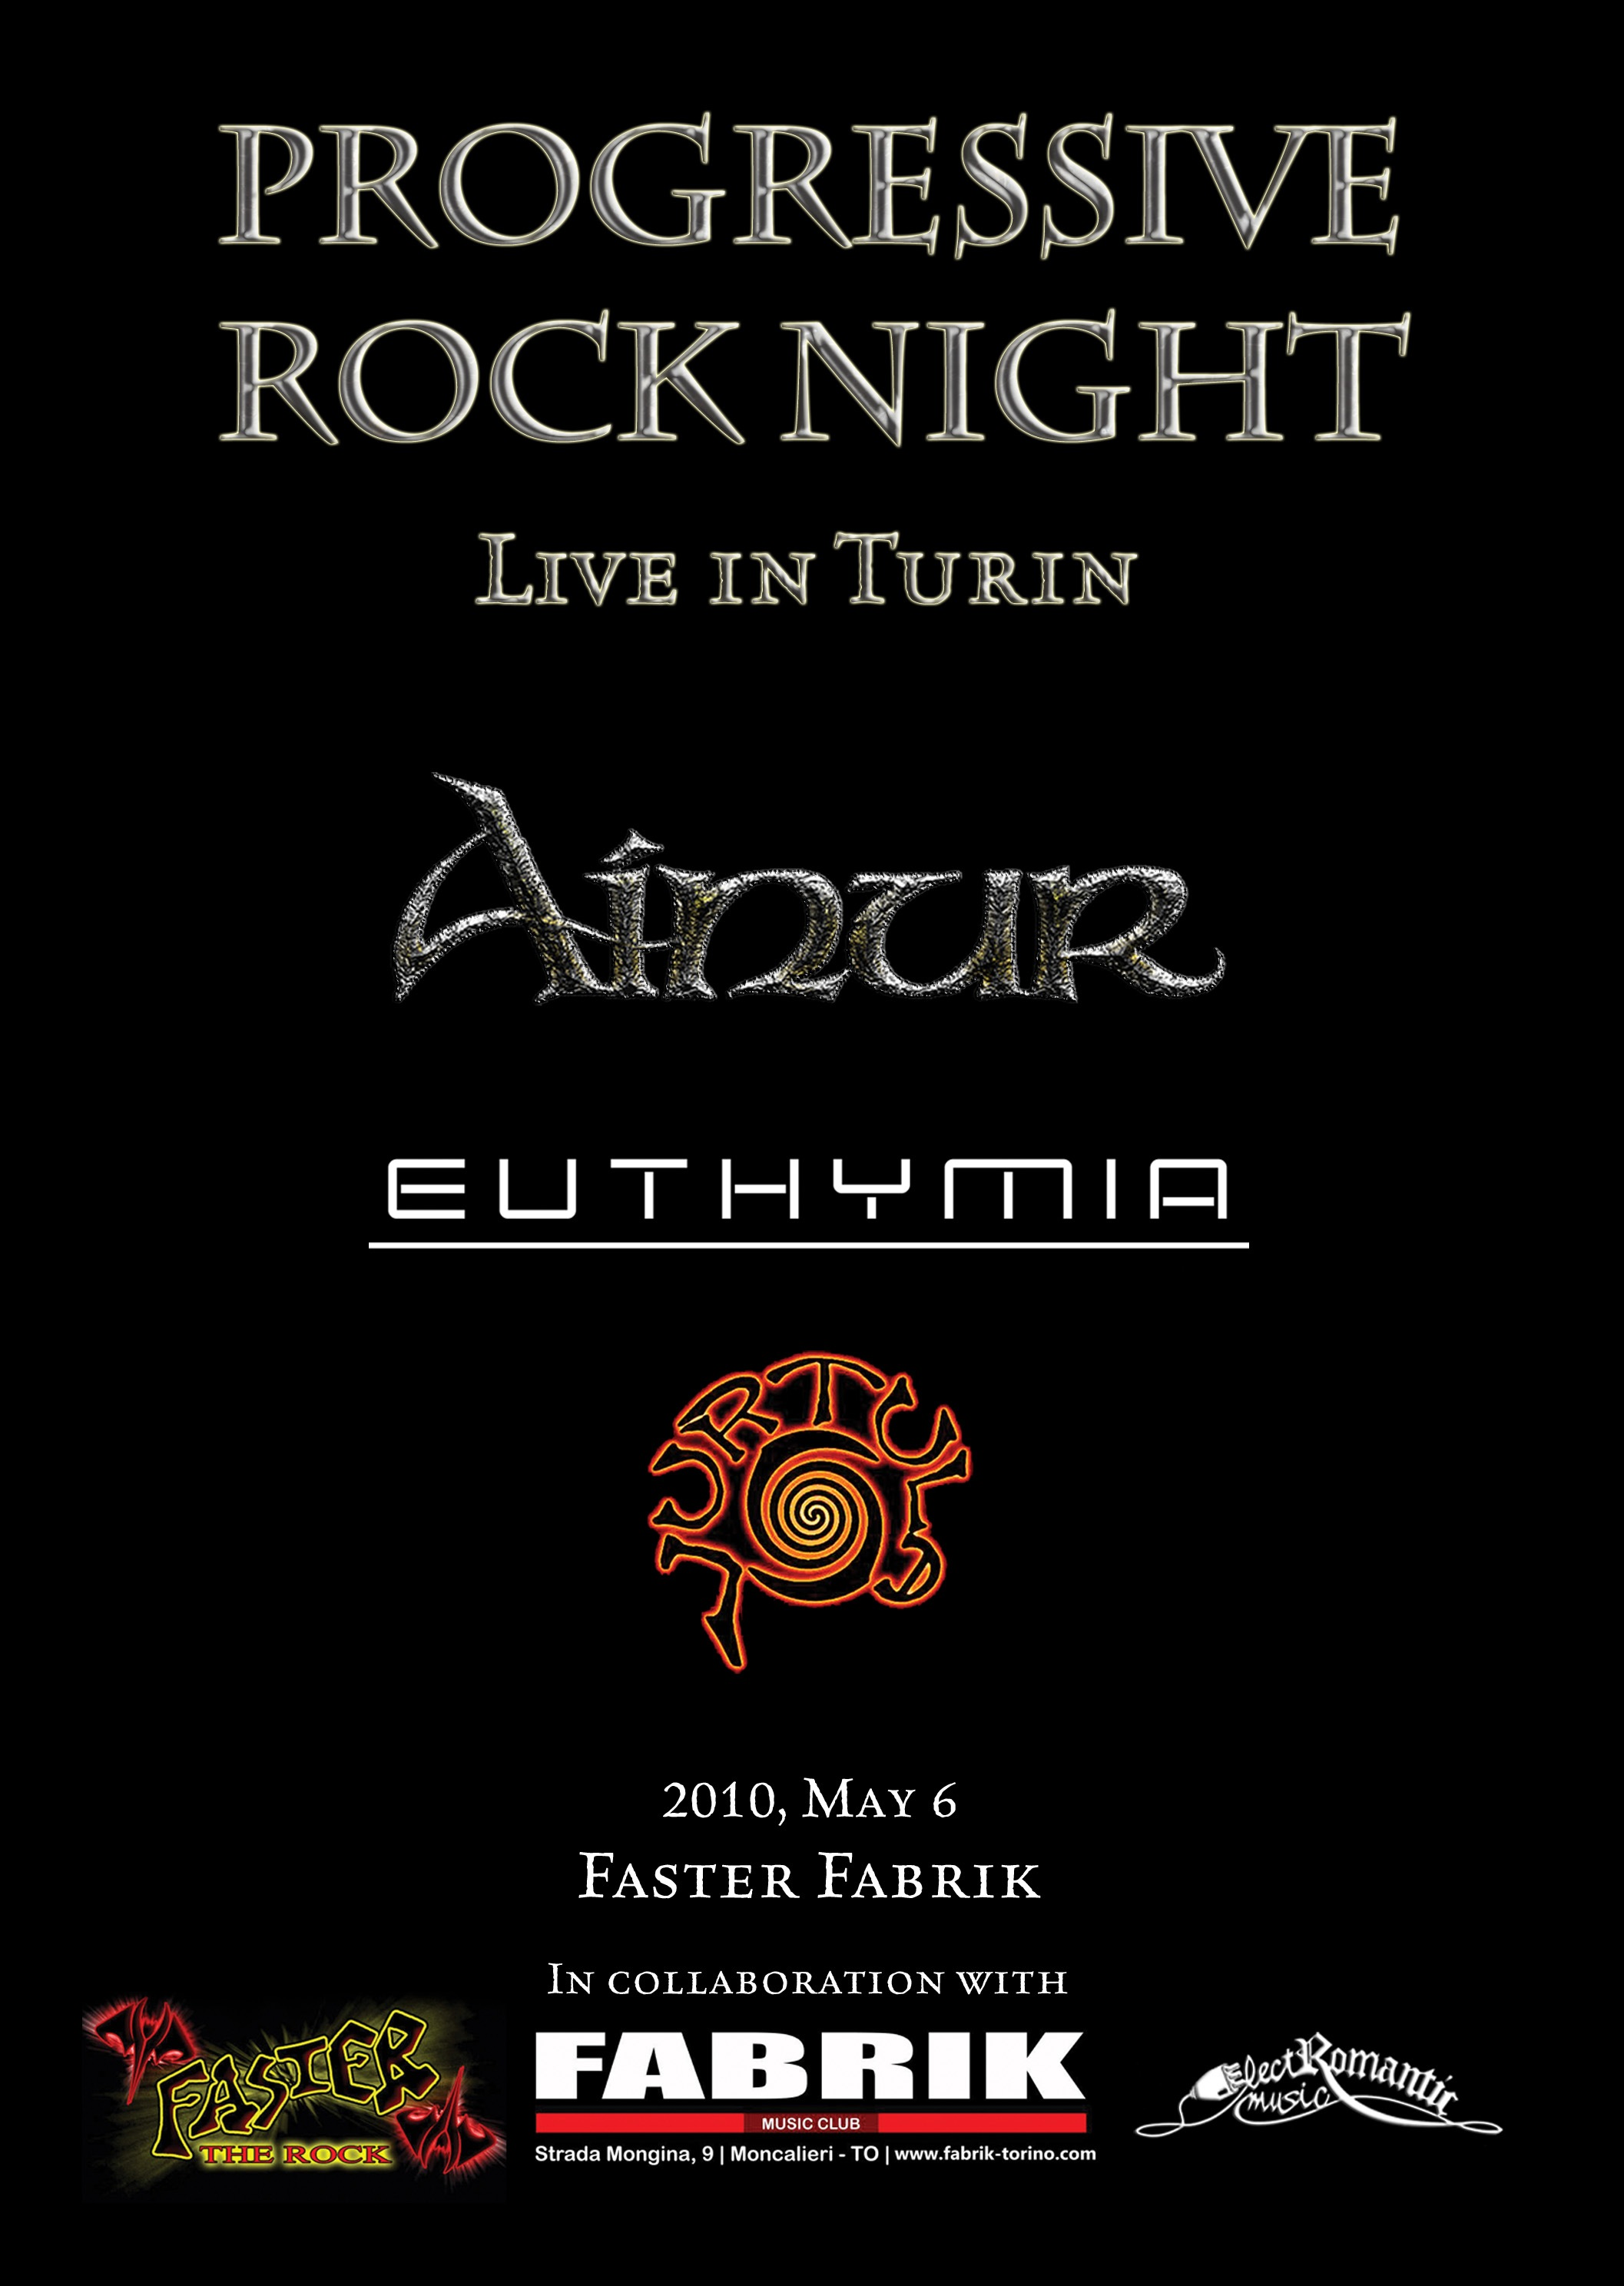 AINUR/EUTHYMIA/VURTULA - PROGRESSIVE ROCK NIGHT - Live in Turin